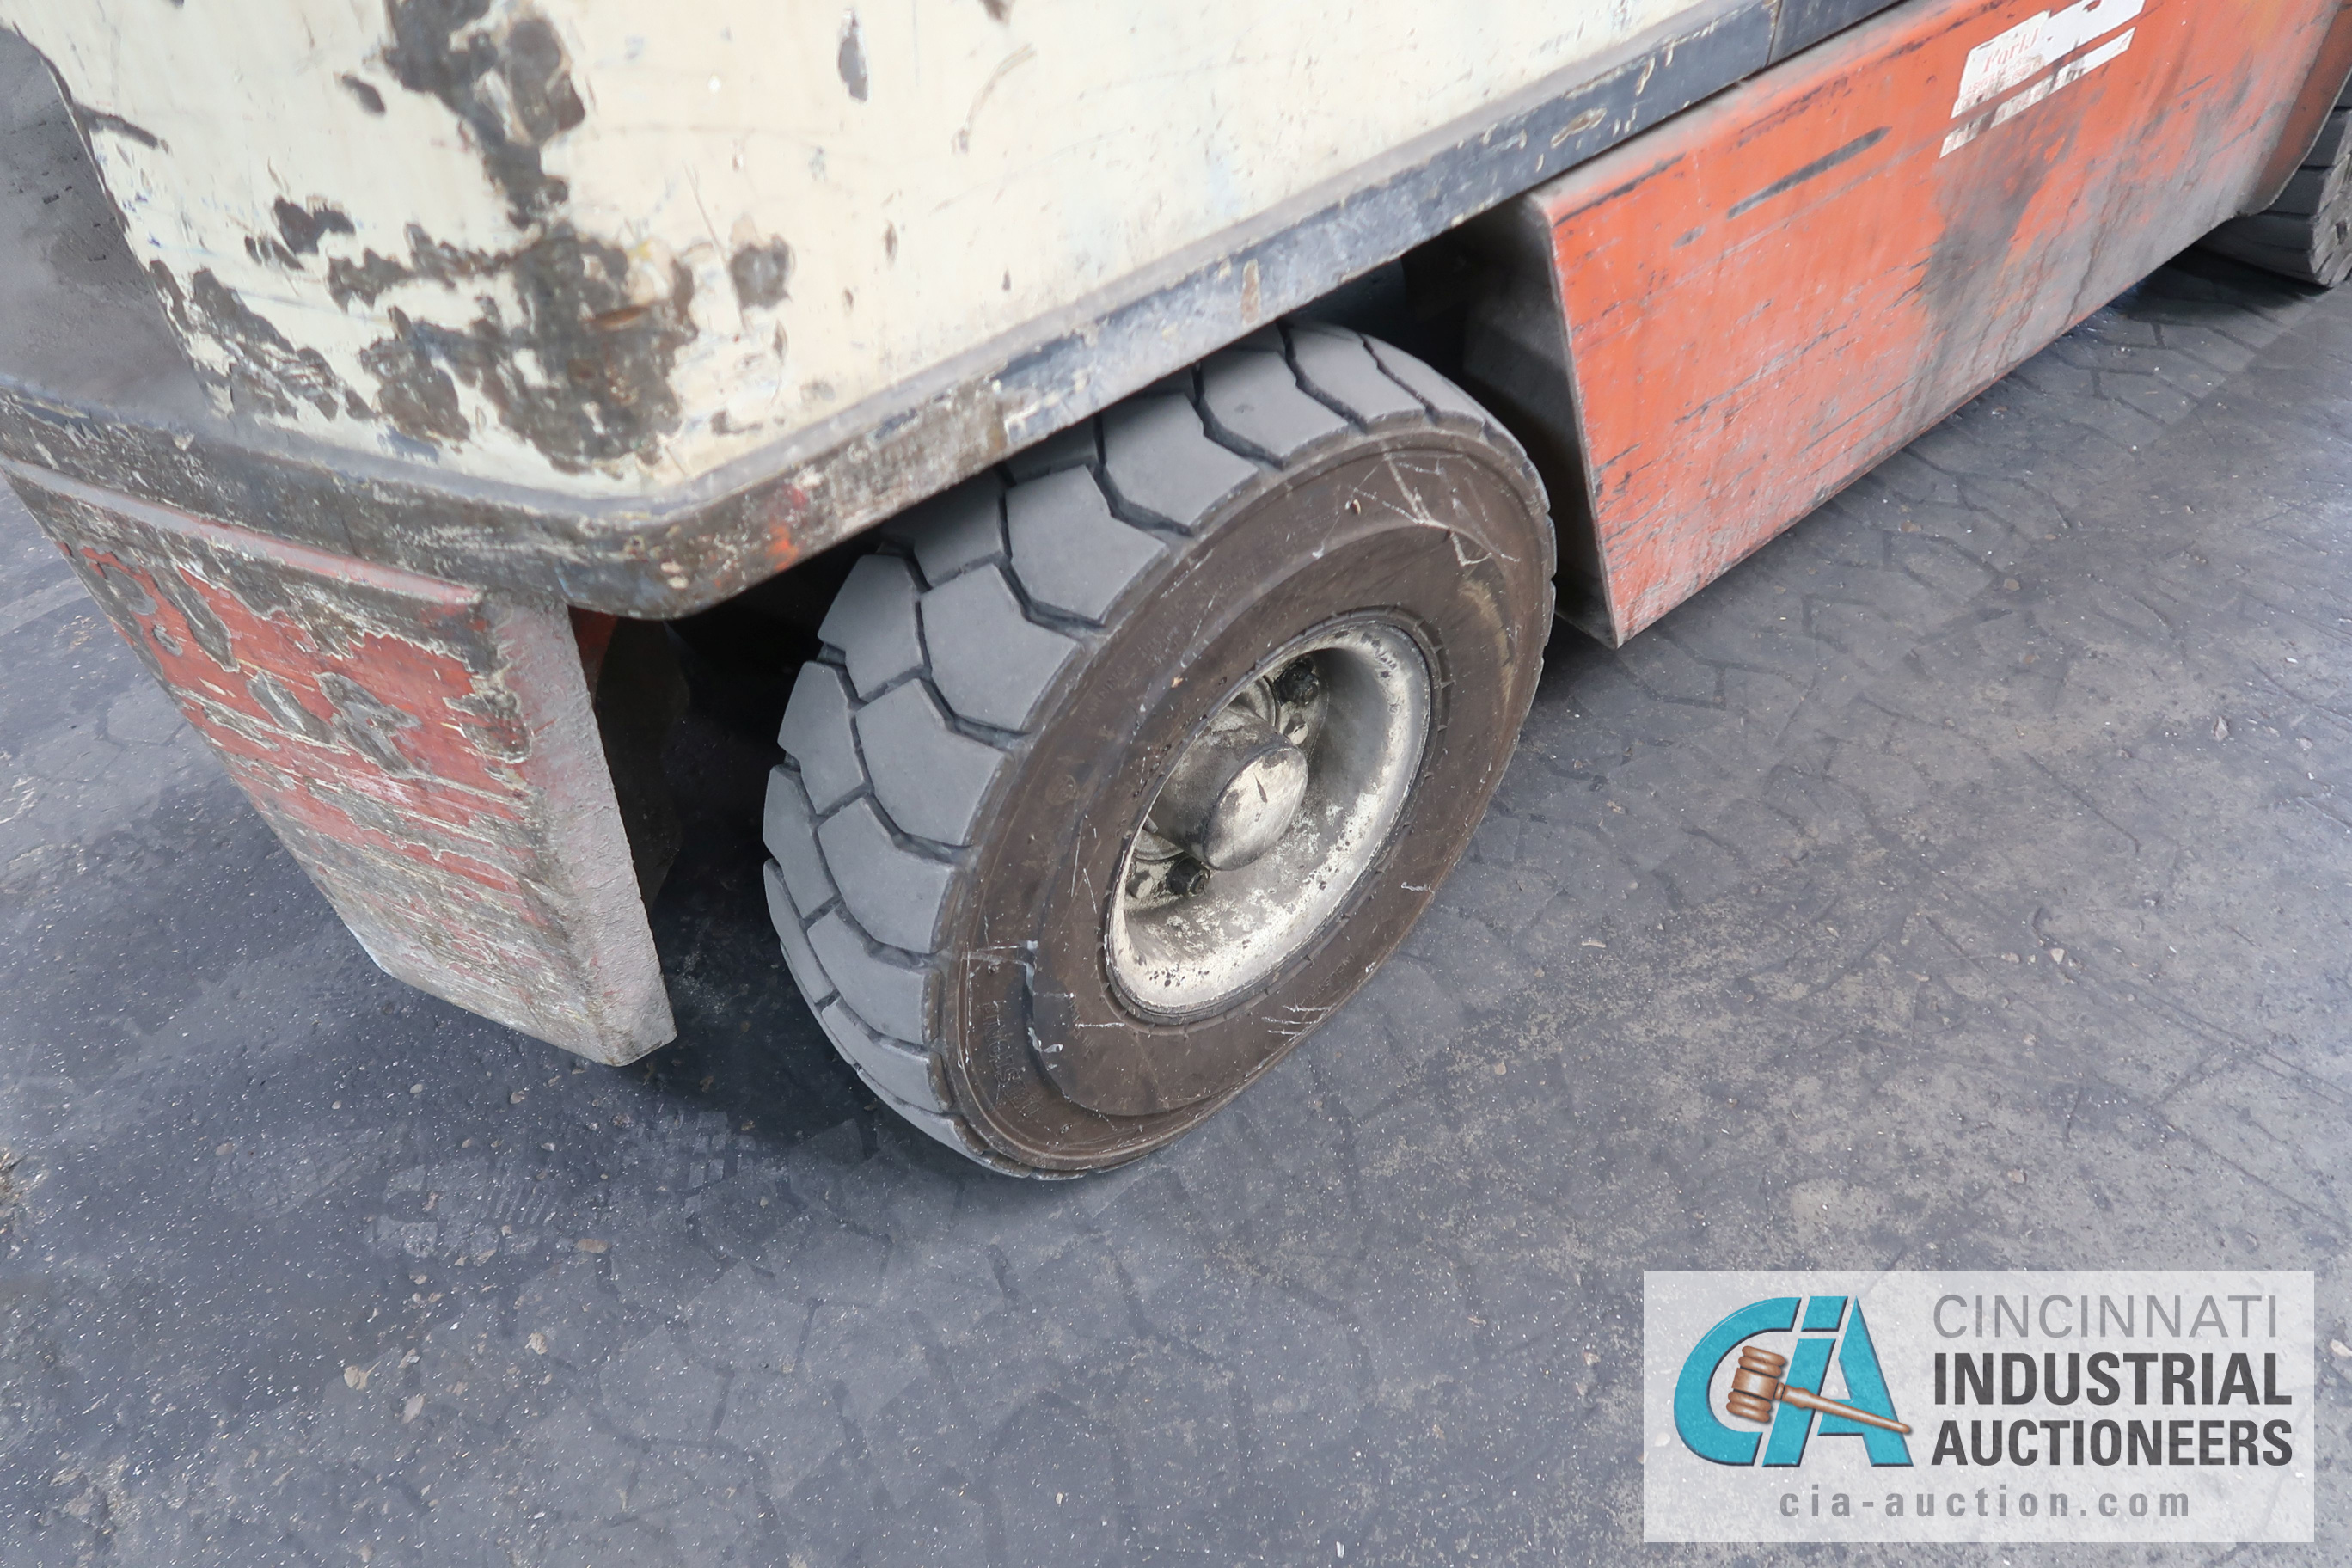 6,000 LB. CAPACITY NISSAN MODEL KUGH02A30V LP GAS, TWO STAGE MAST, SOLID PNEUMATIC TIRE LIFT - Image 9 of 14